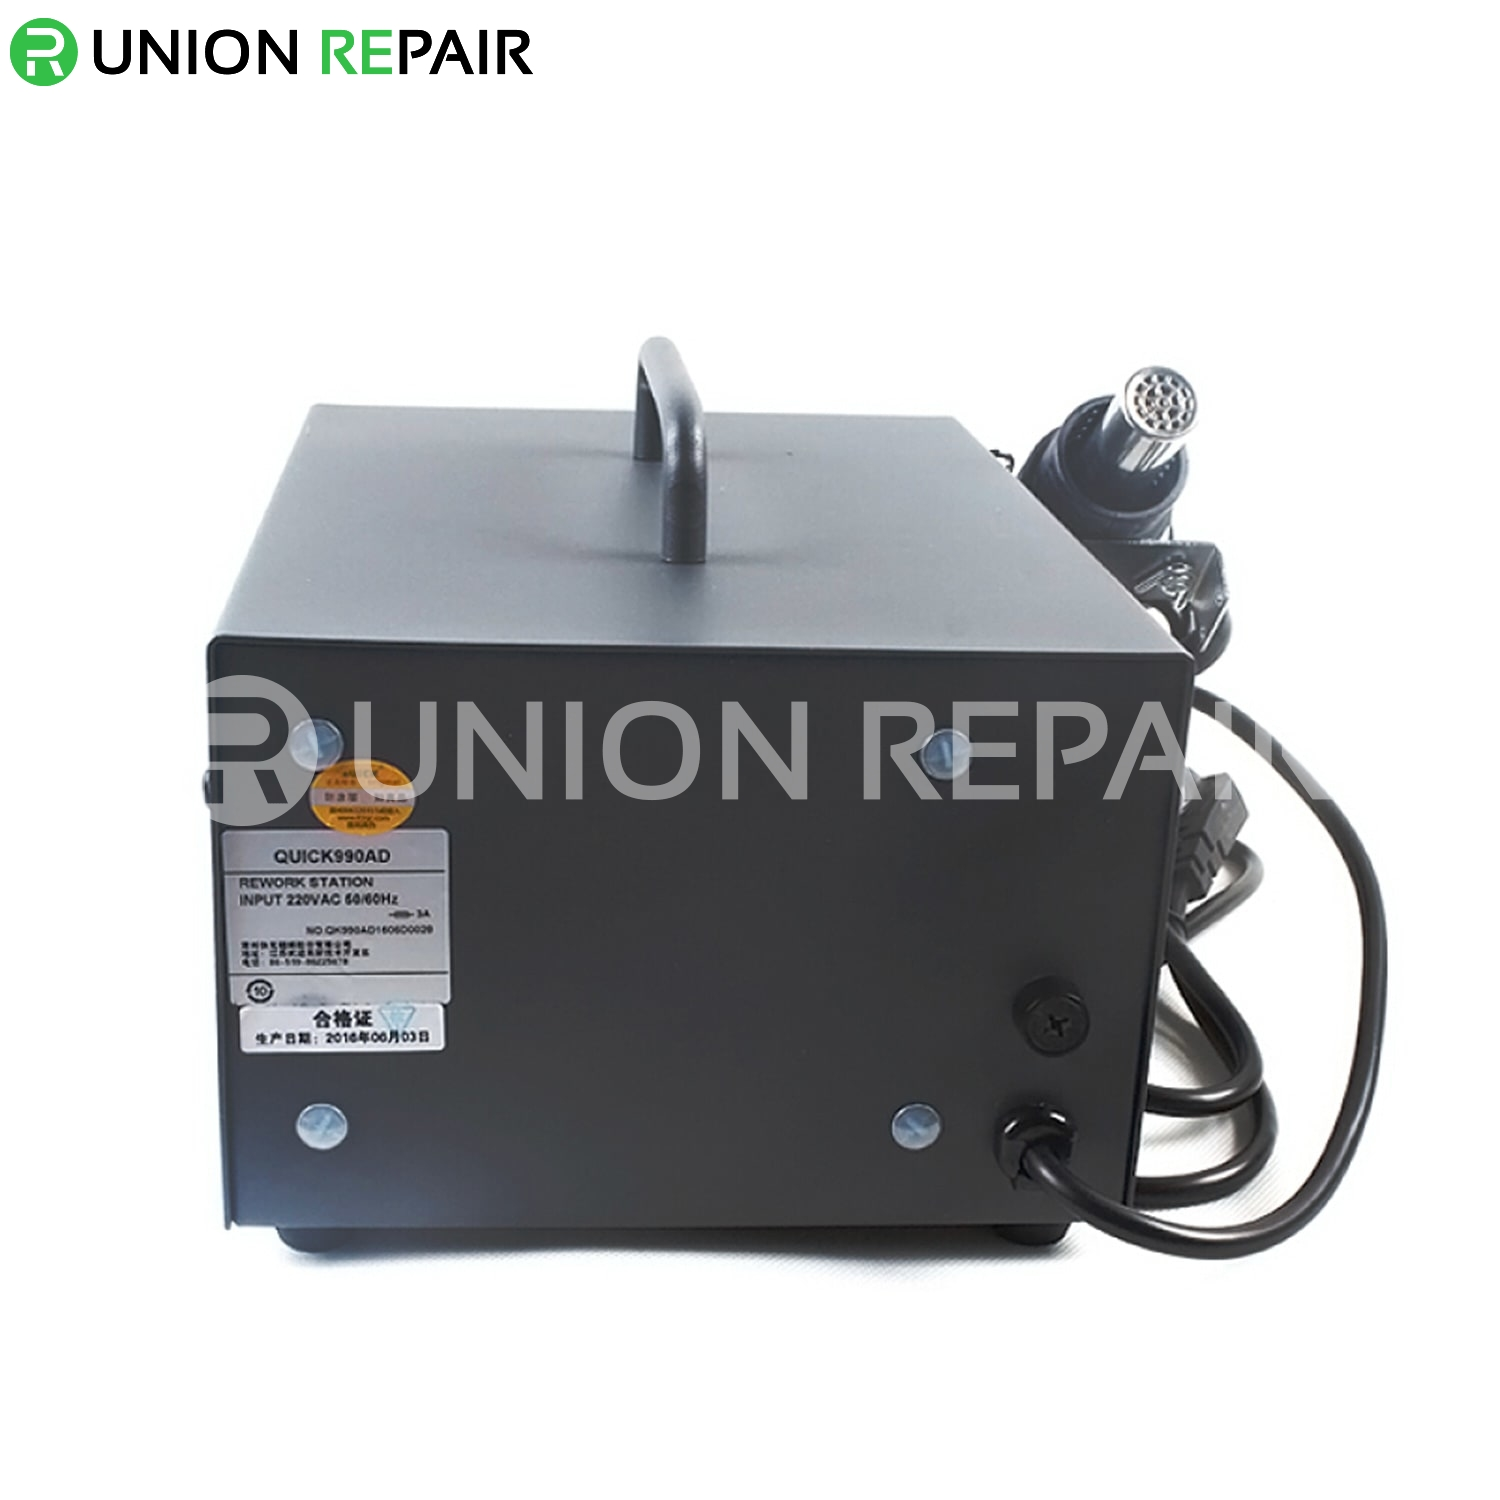 QUICK 990AD AC220V 540W Digital SMD Rework Soldering Station with Hot Air Gun Controllable Air Volume